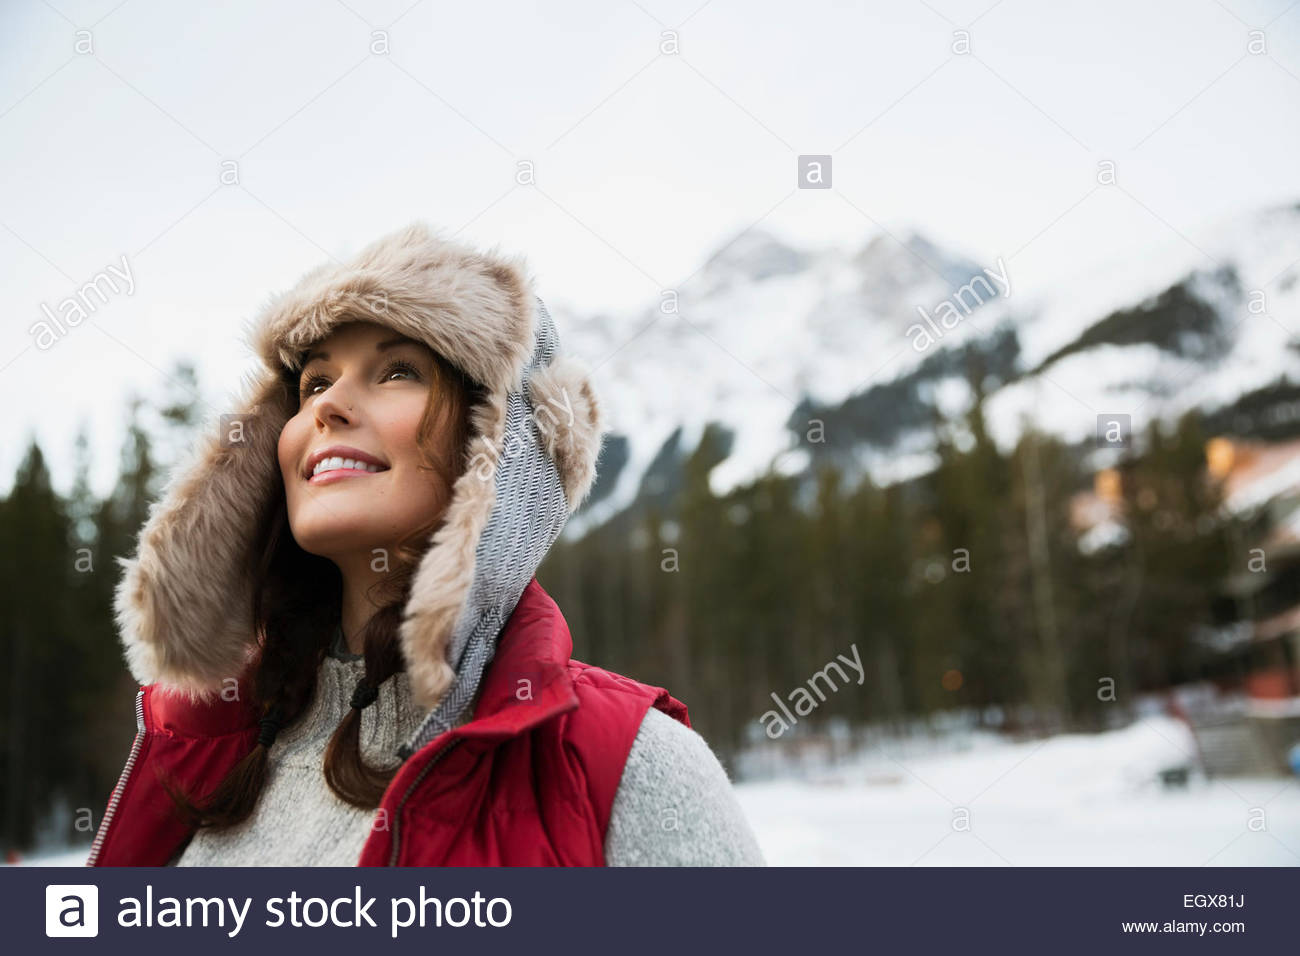 Curious woman looking up below snowy mountains - Stock Image